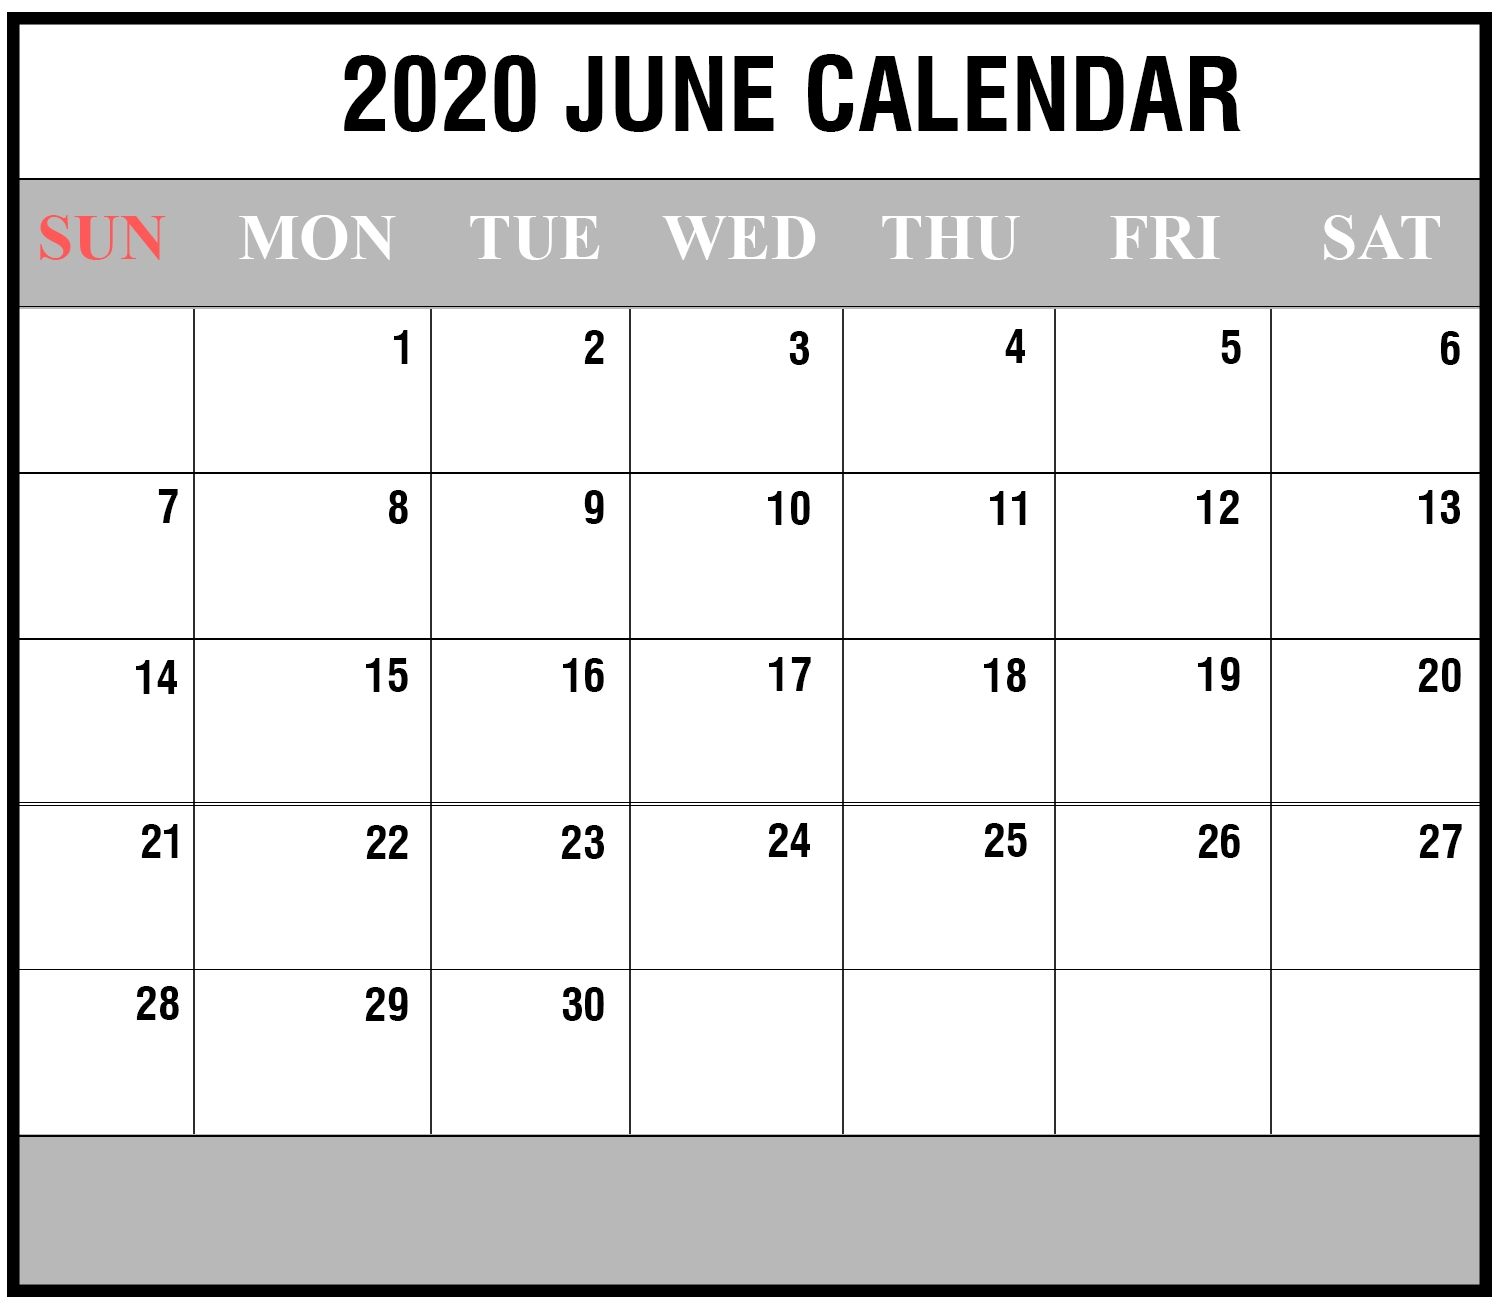 Free Blank June 2020 Printable Calendar With Holidays [Pdf-Blank Customizable June Calendar Template 2020